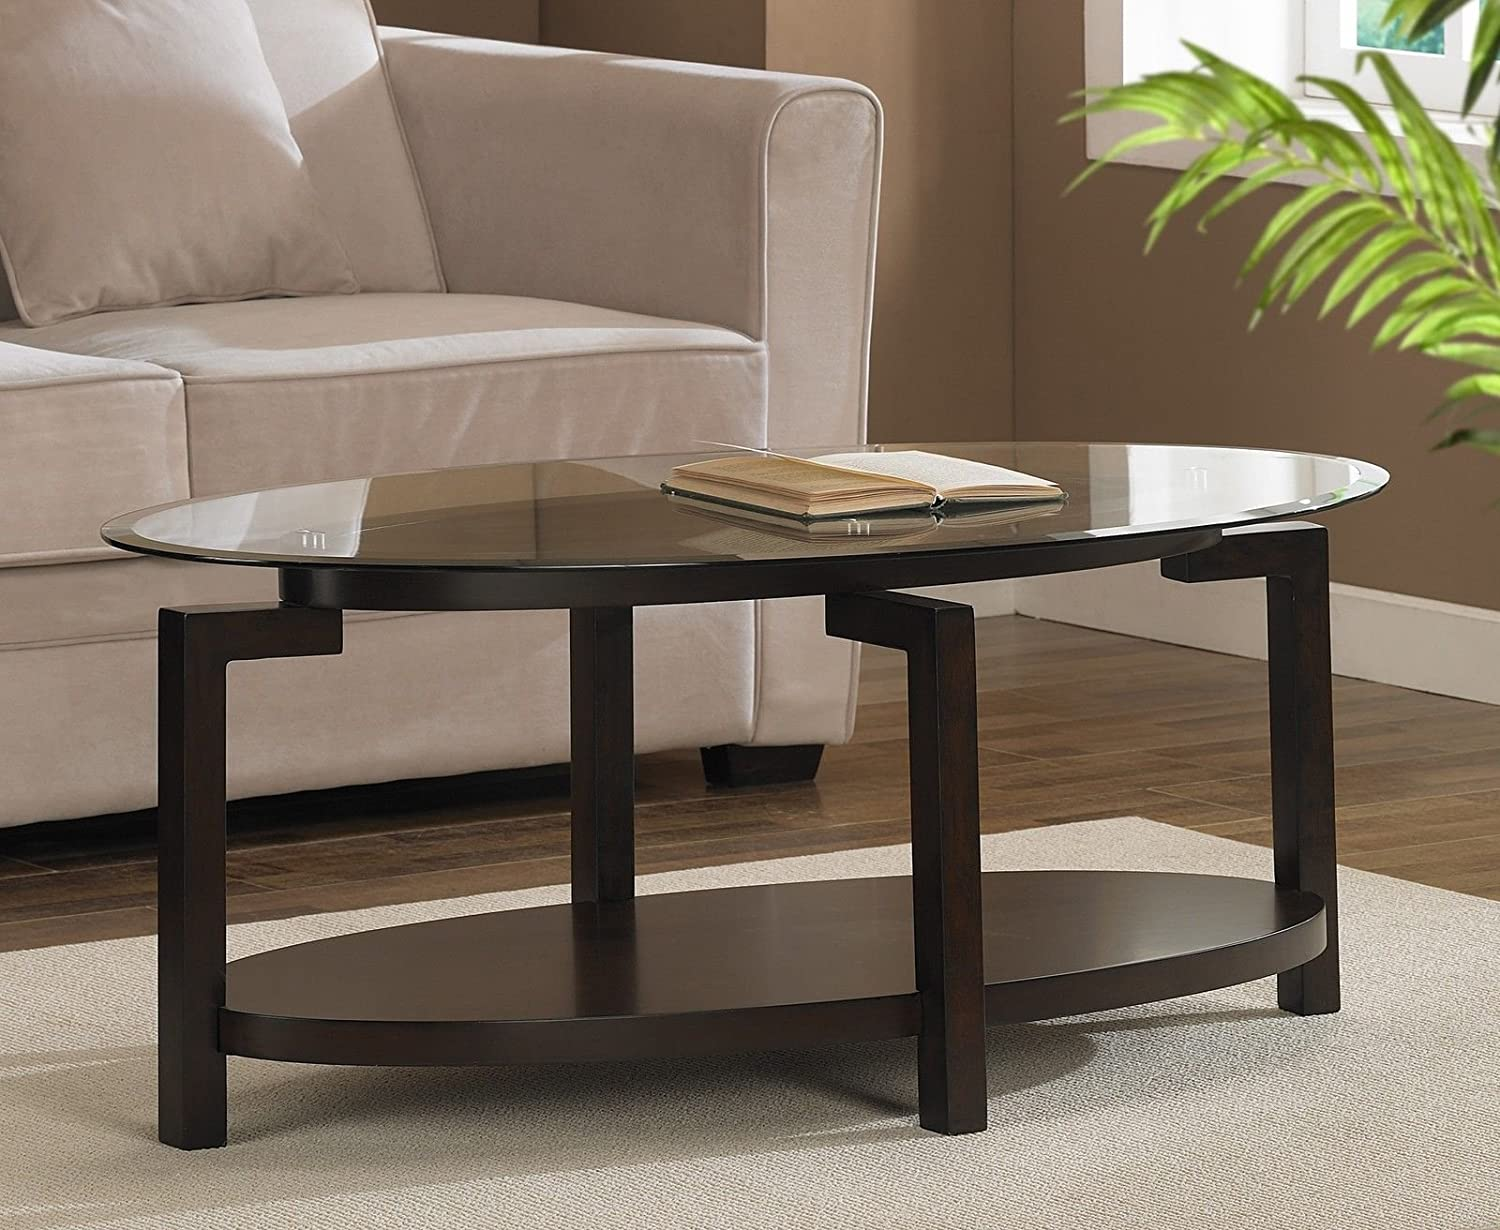 Amazon metro shop tanner espresso coffee table with shelf amazon metro shop tanner espresso coffee table with shelf kitchen dining geotapseo Image collections